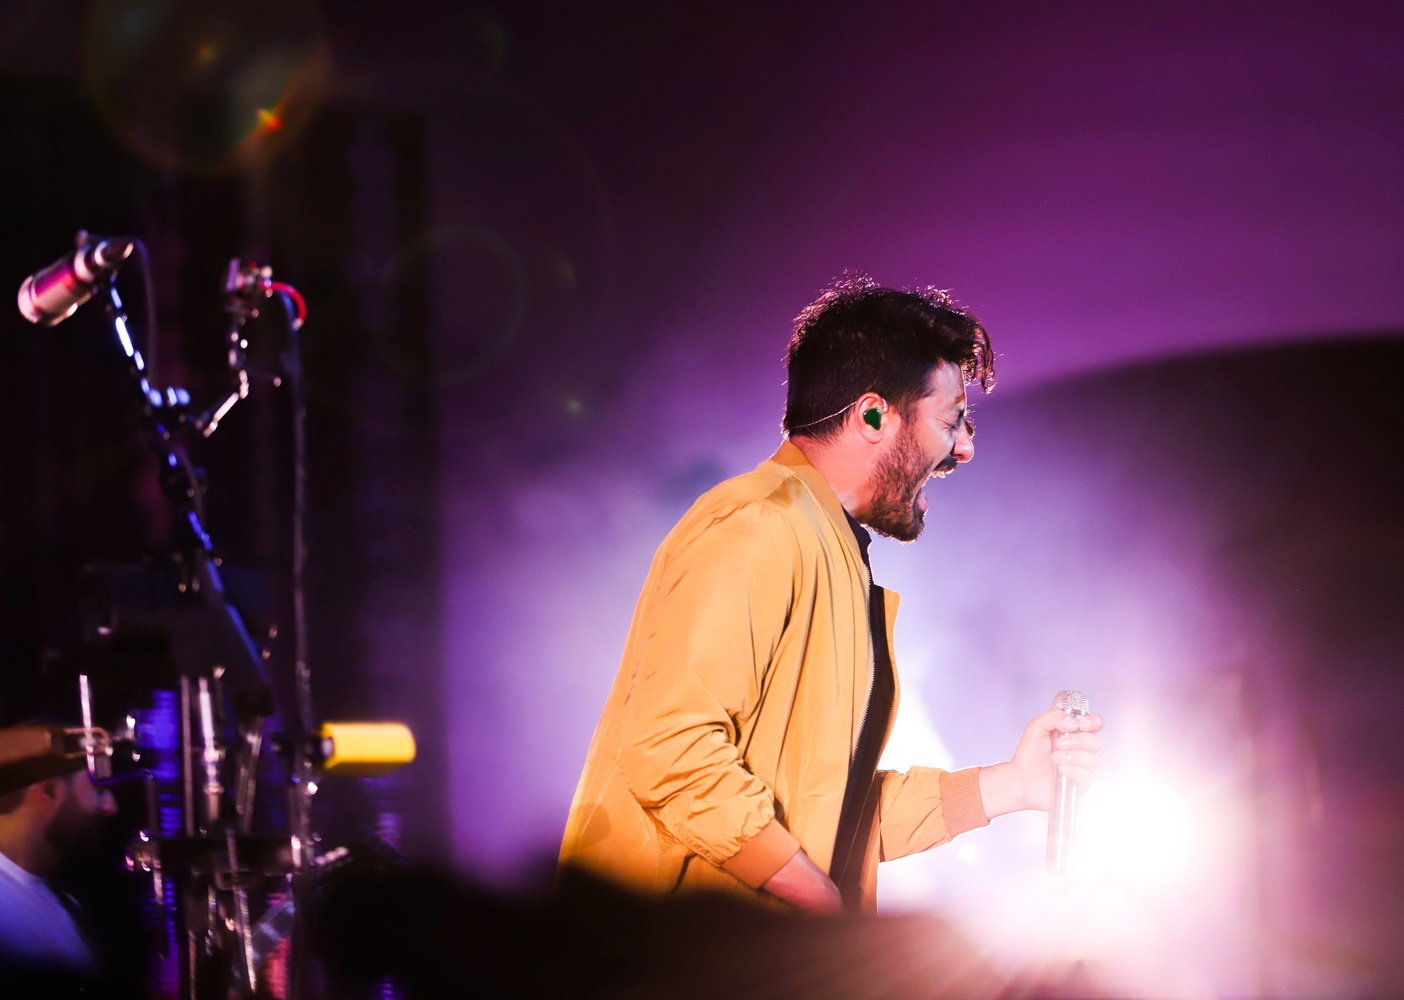 American rock band Young the Giant performed for an audience of thousands at Rockland Trust Bank Pavilion in June.